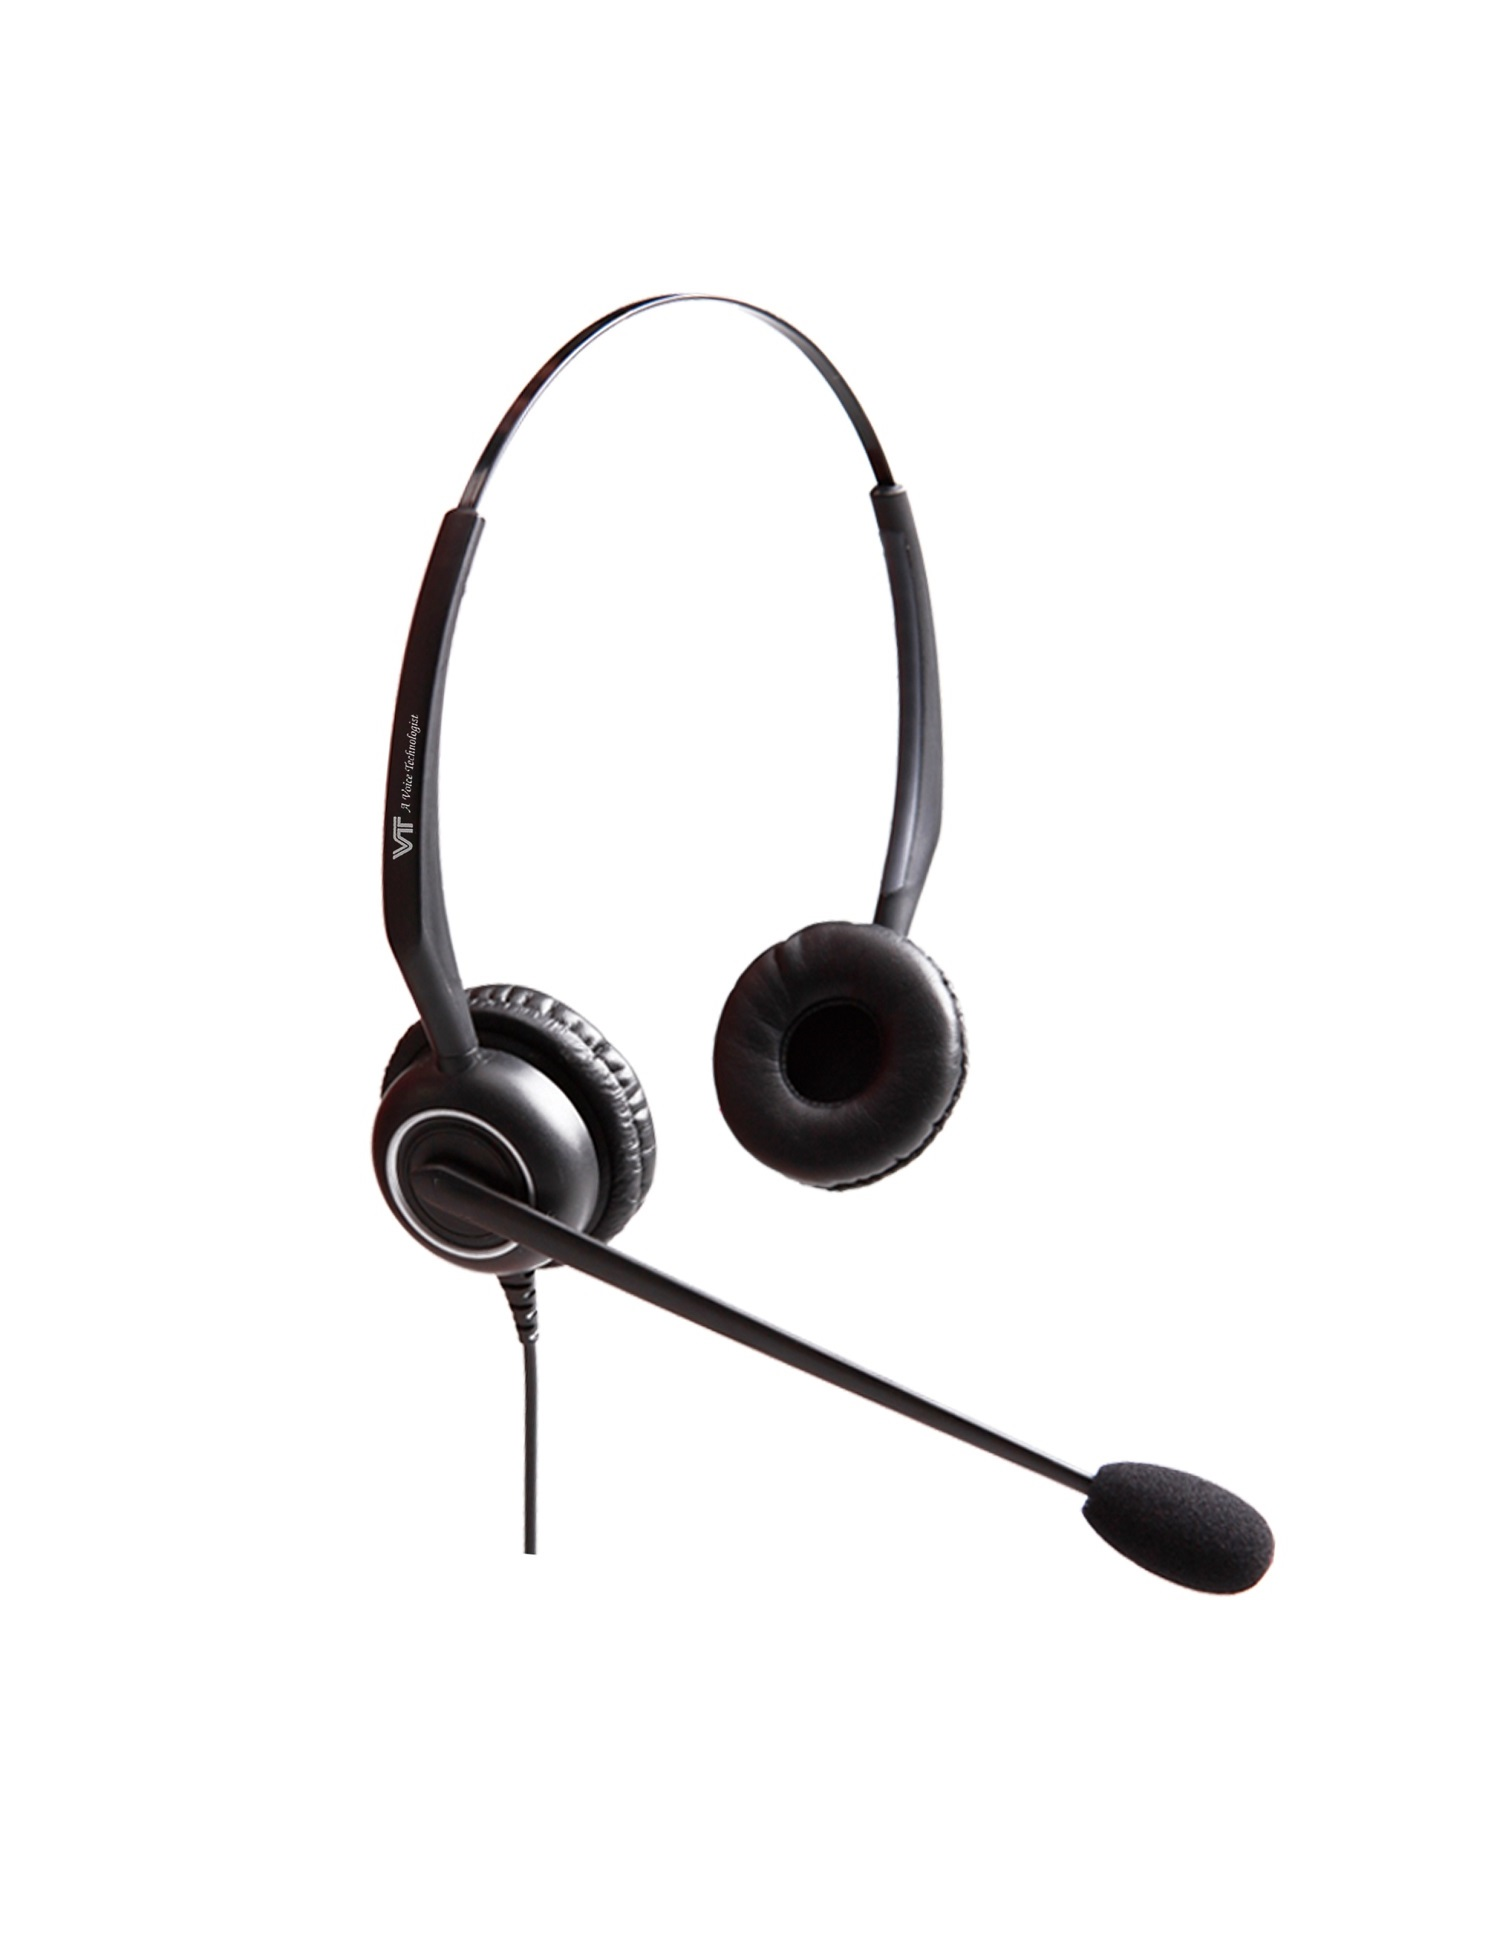 VT 5000UNC-D Dual-Ear IP Phone Headset with RJ9 QD Cable